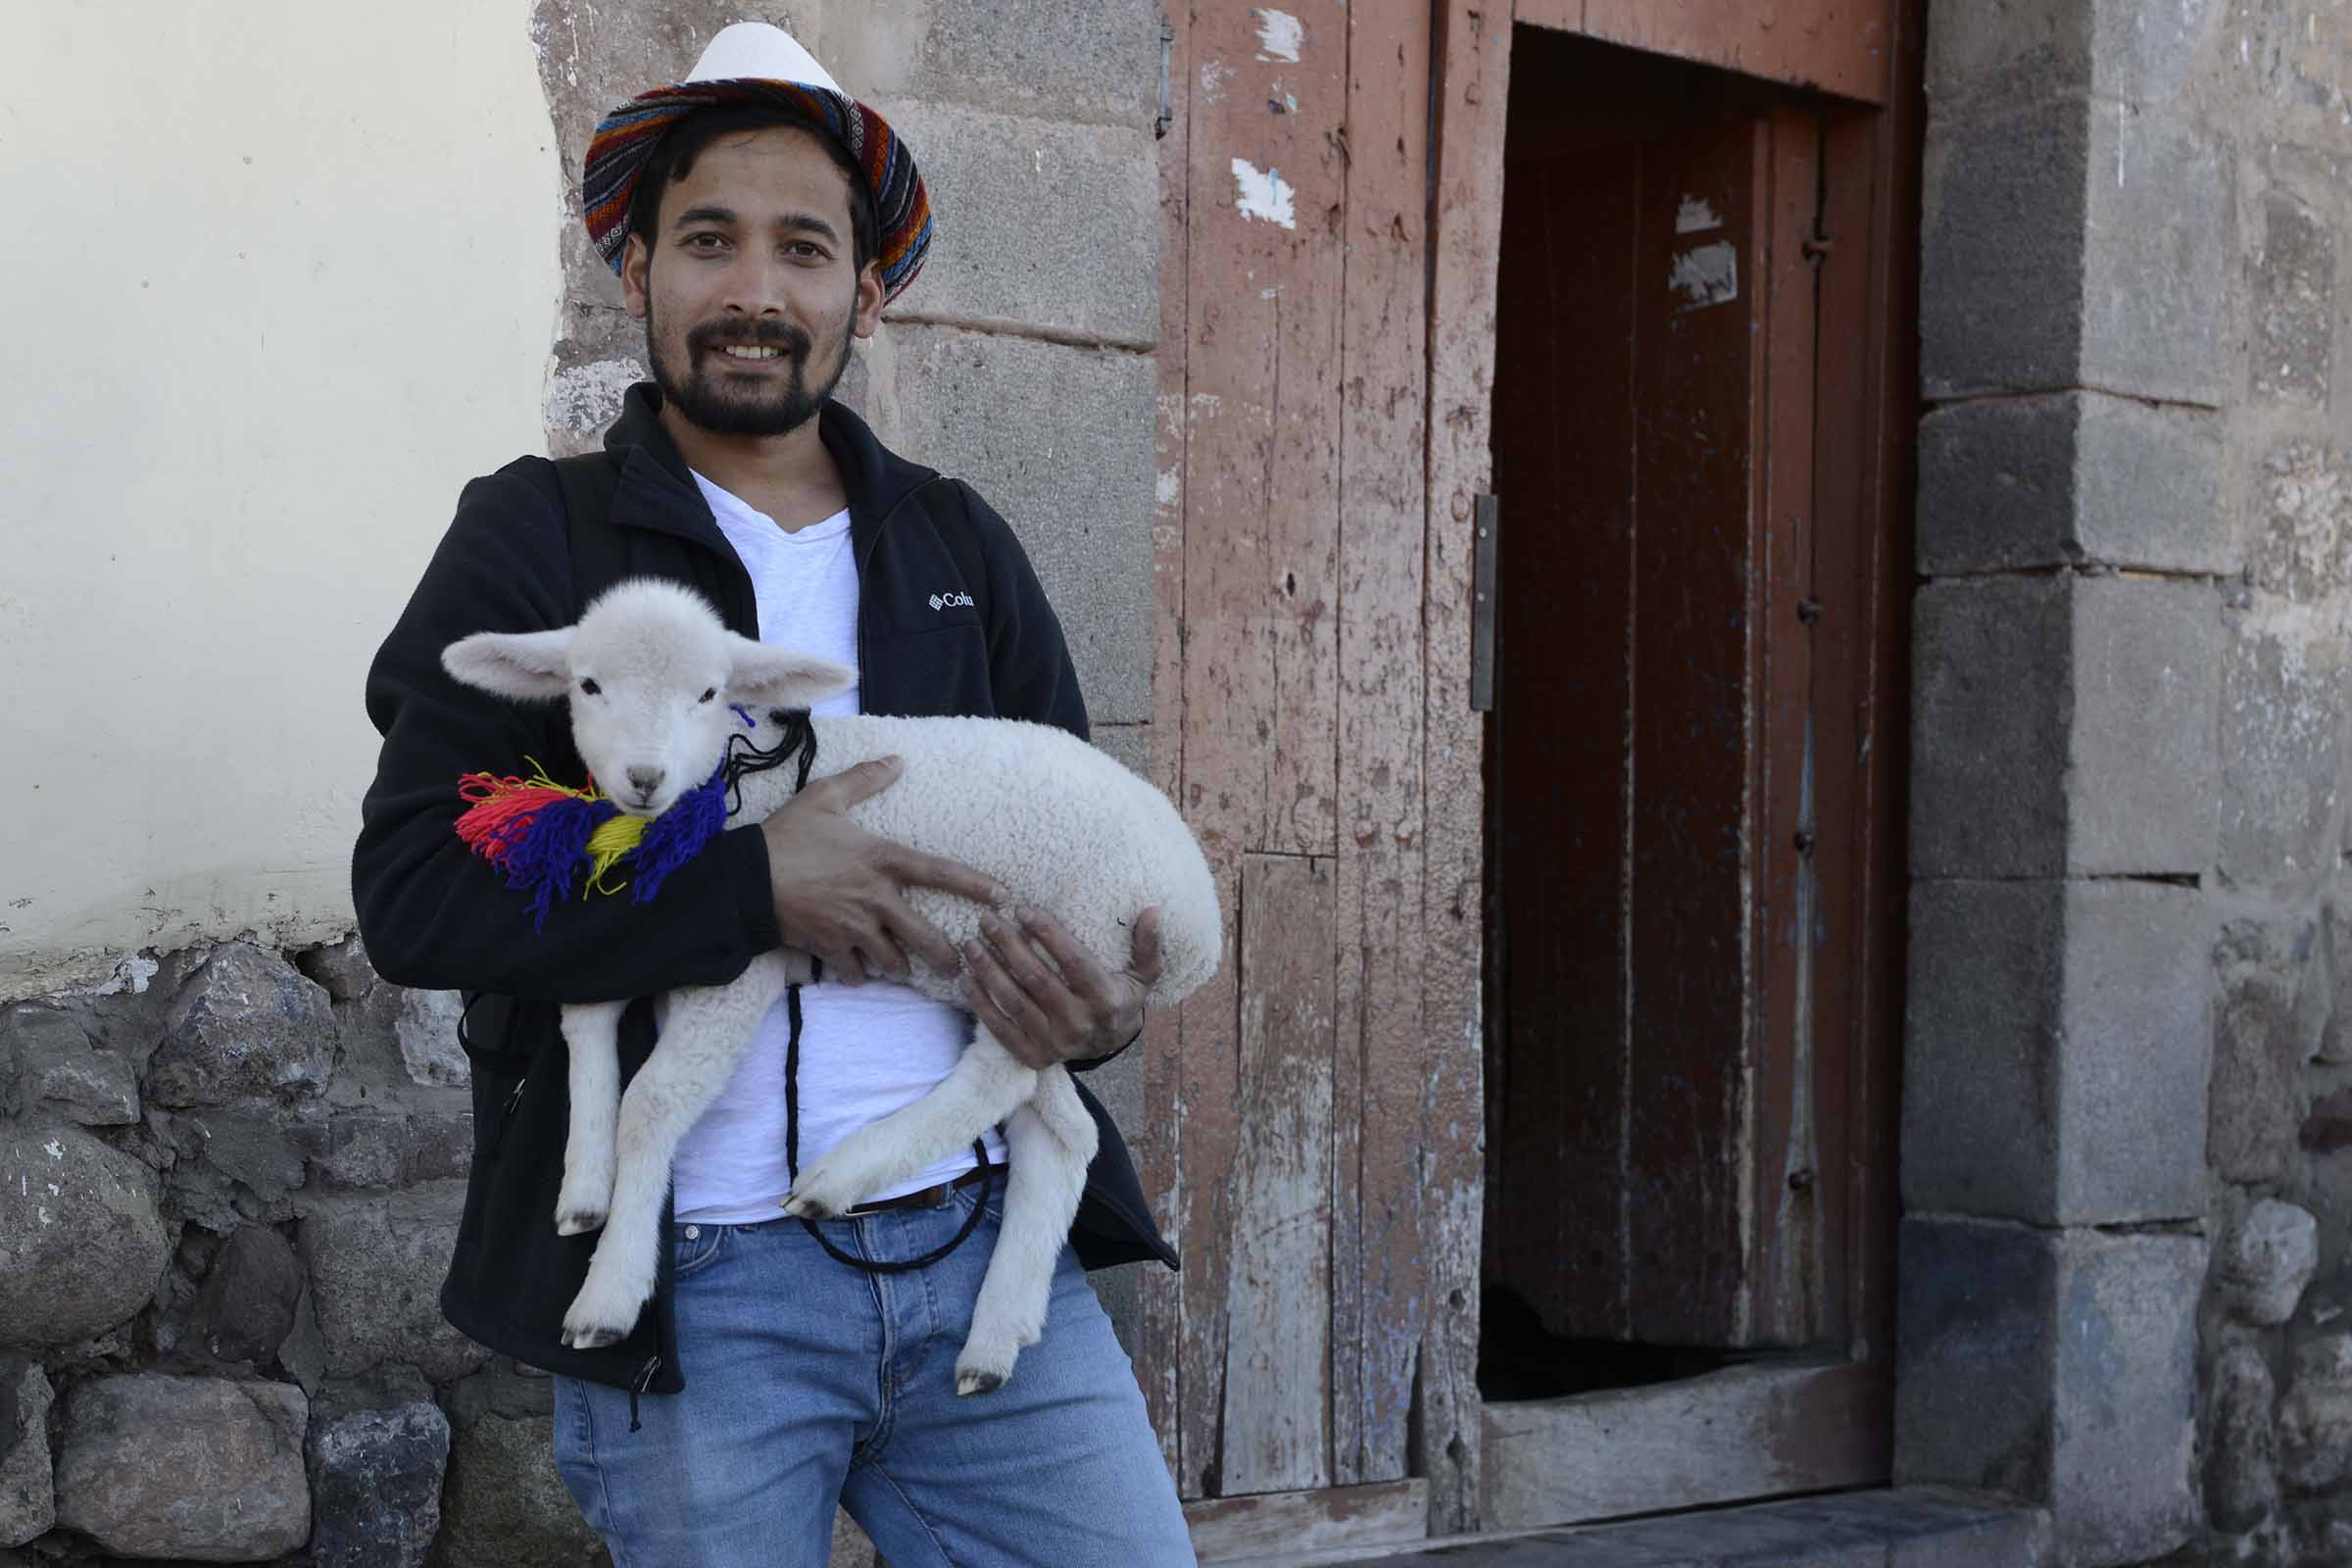 jimmy-nelson-foundation-peru-quechua-behind-the-scenes-gallery-4